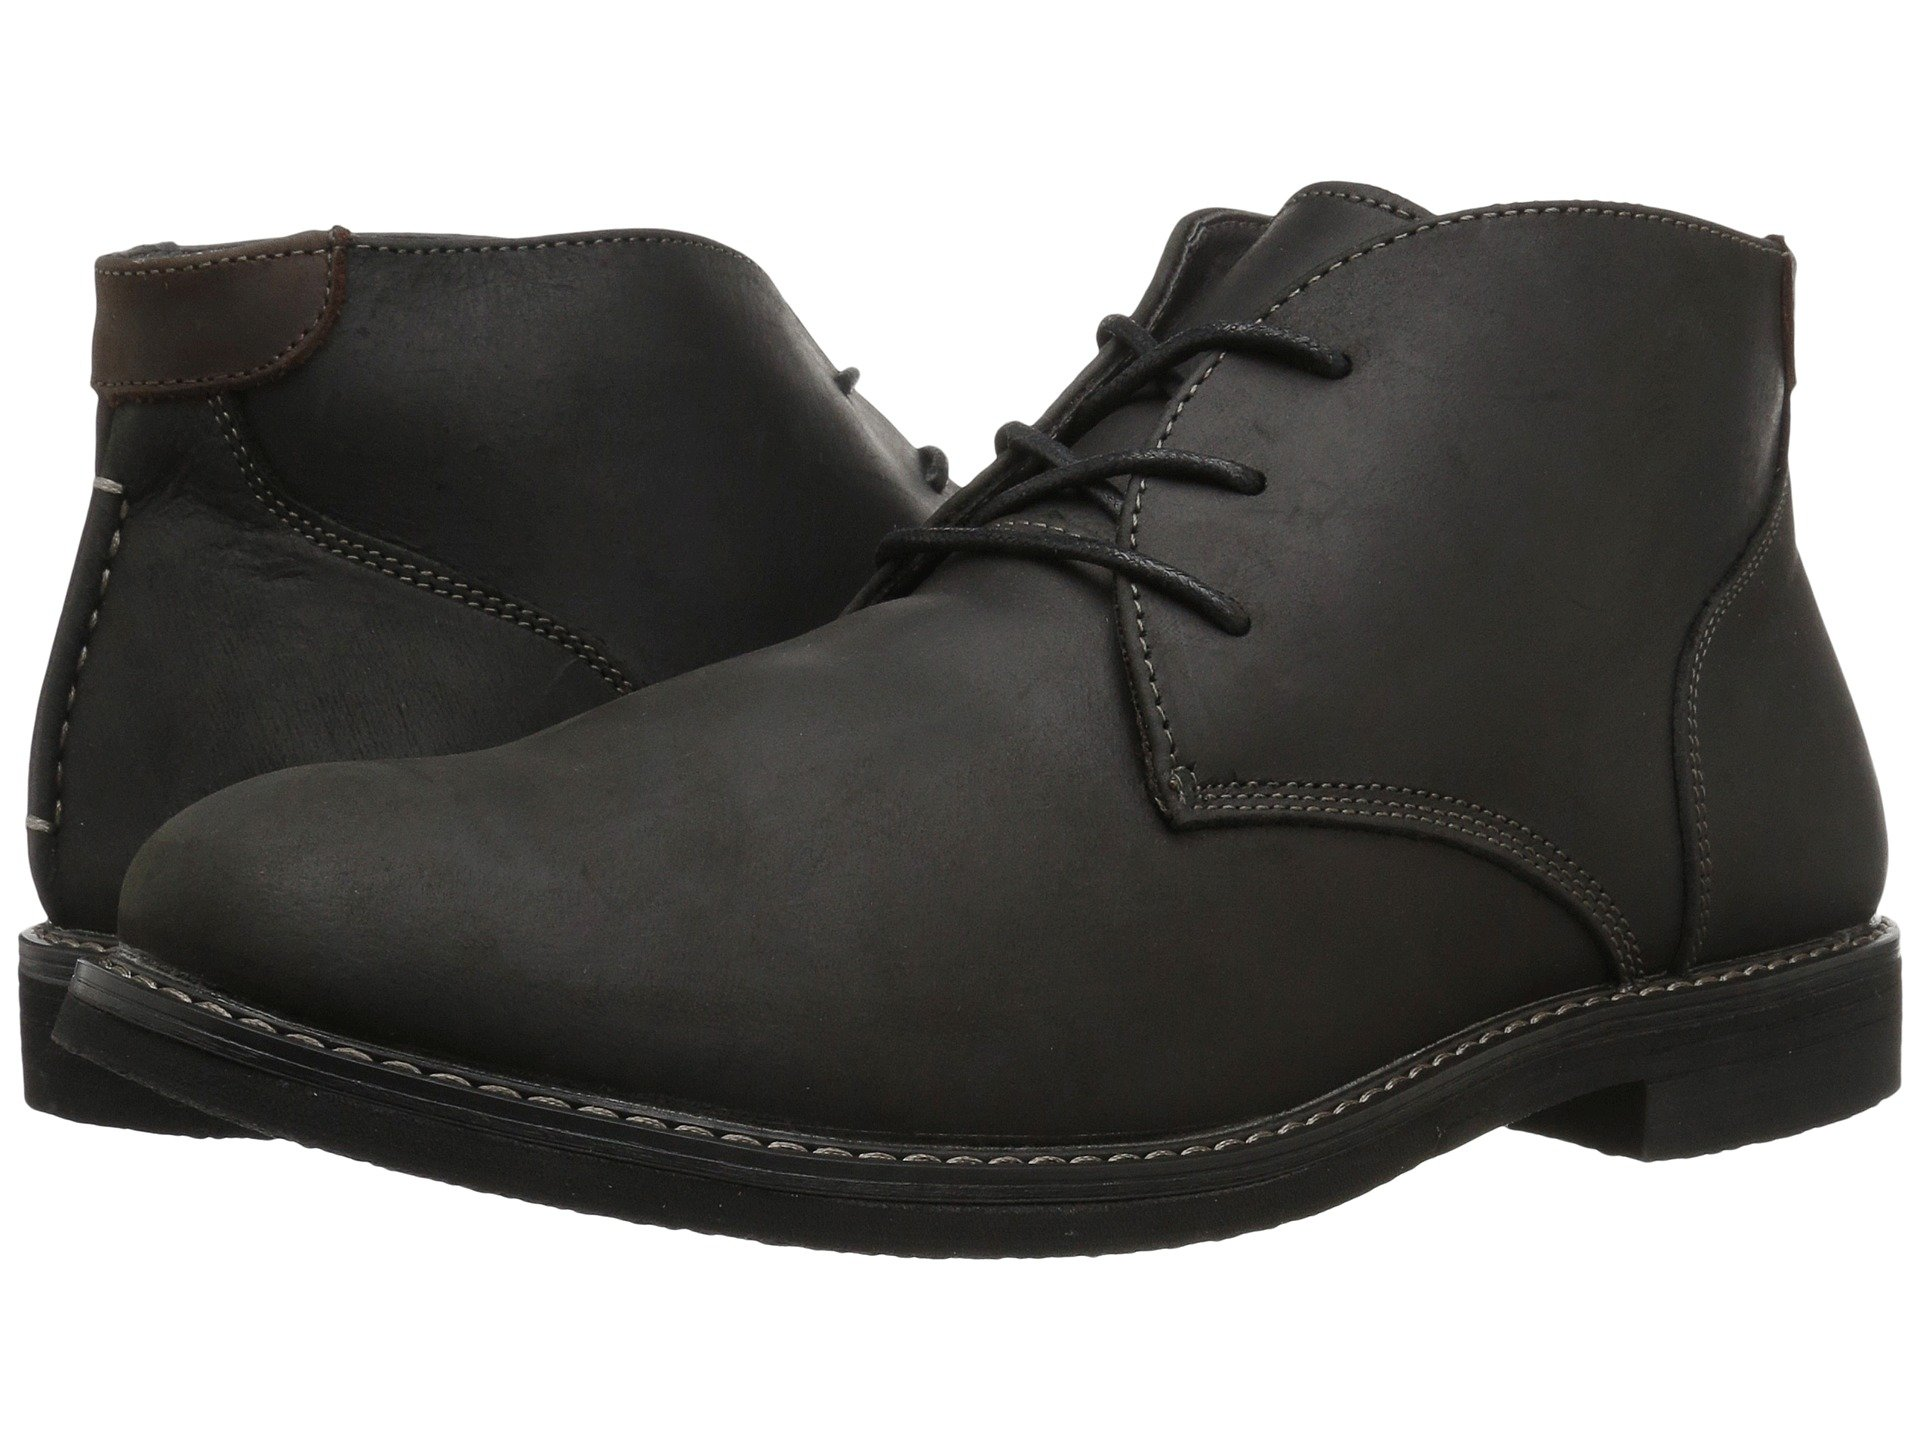 396fbf8911898 Chukka boot, Shoes + FREE SHIPPING | Zappos.com